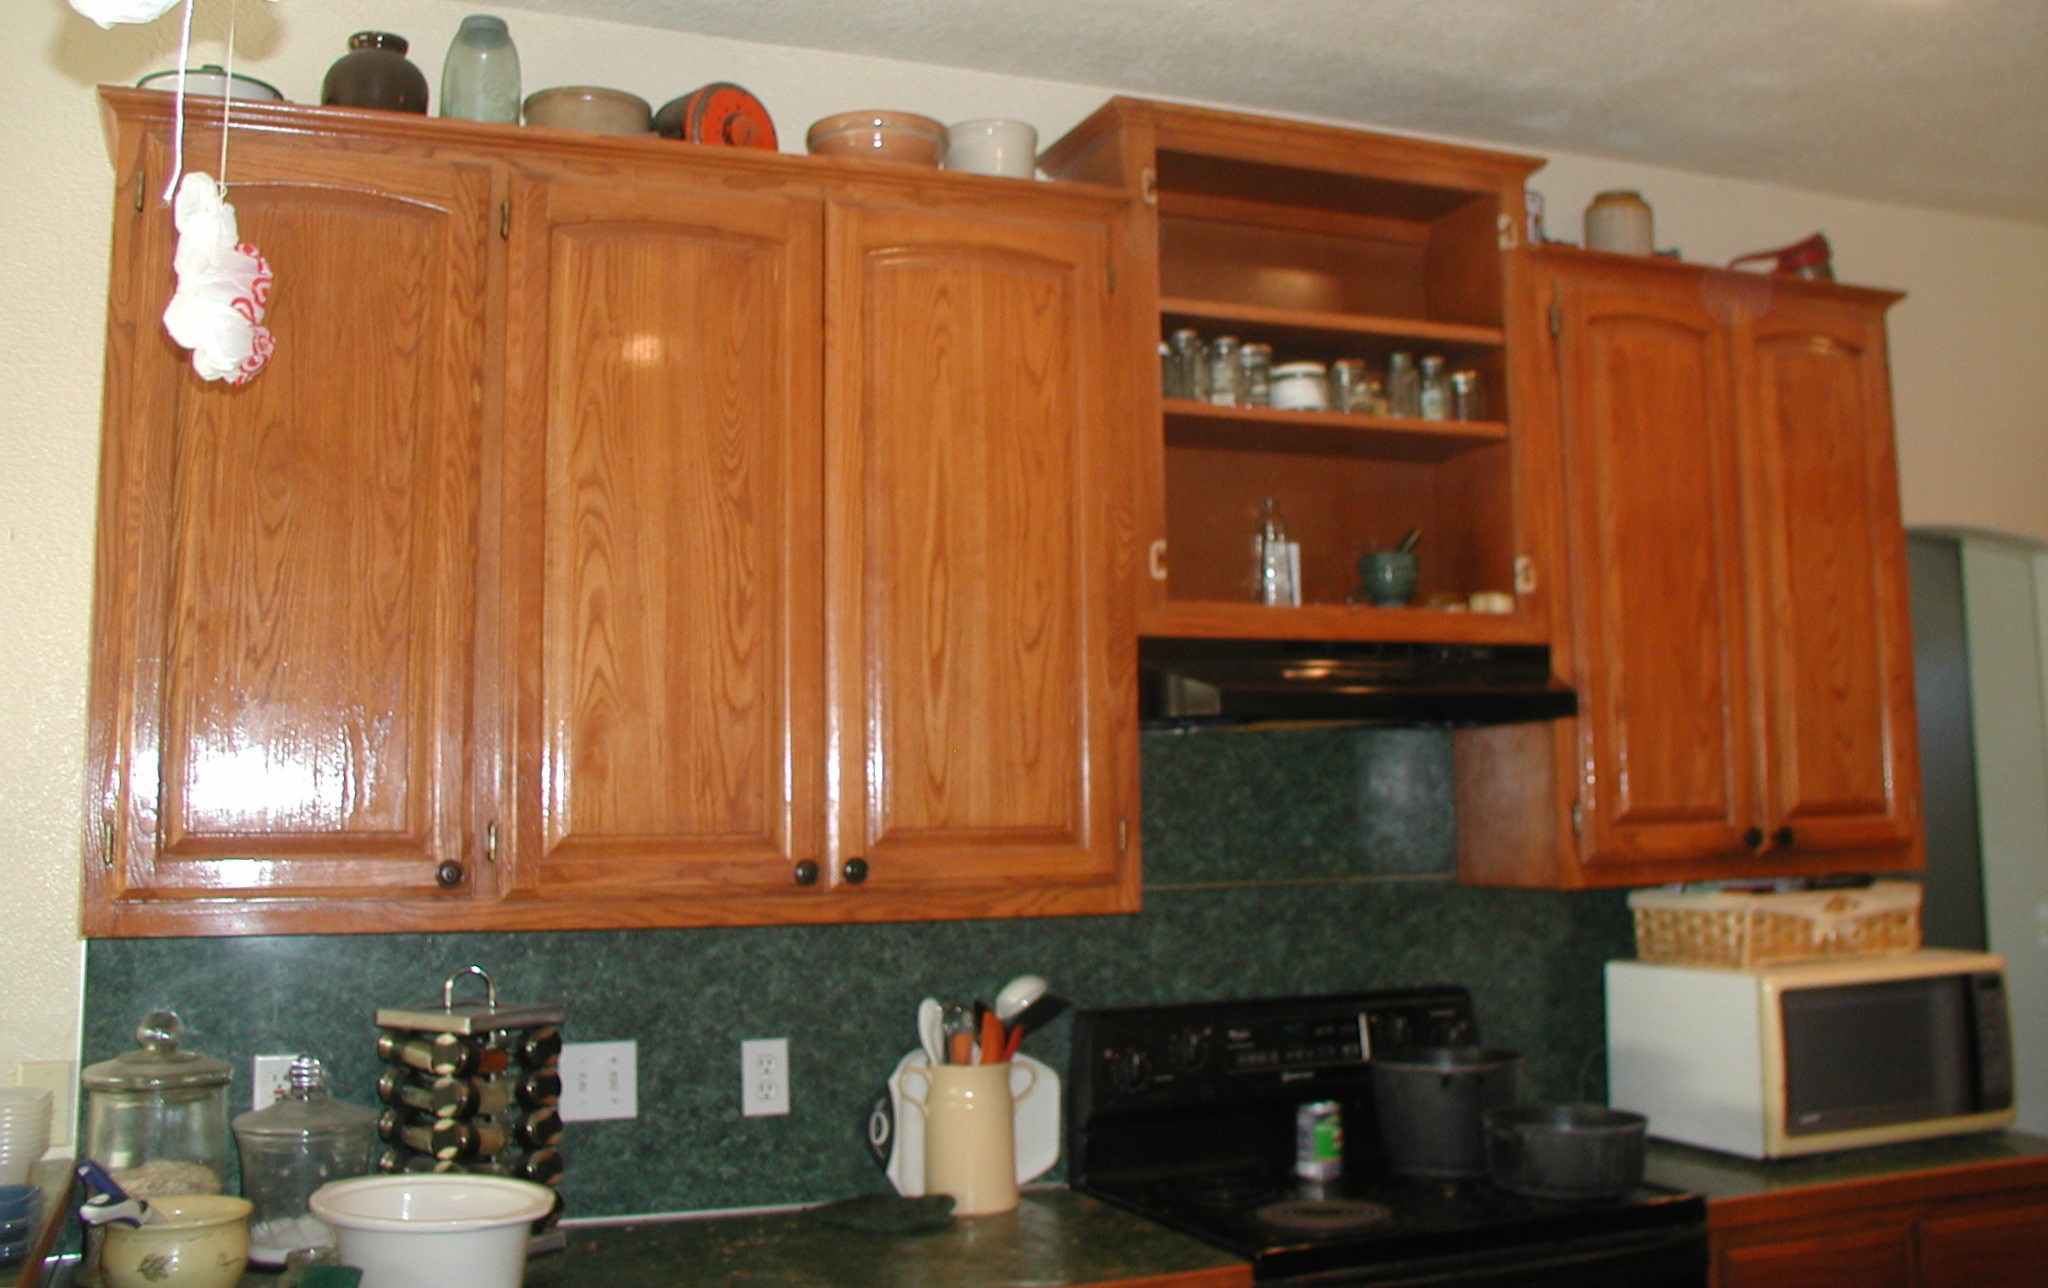 Wall Cabinet Kitchen  Project making an upper wall cabinet taller kitchen